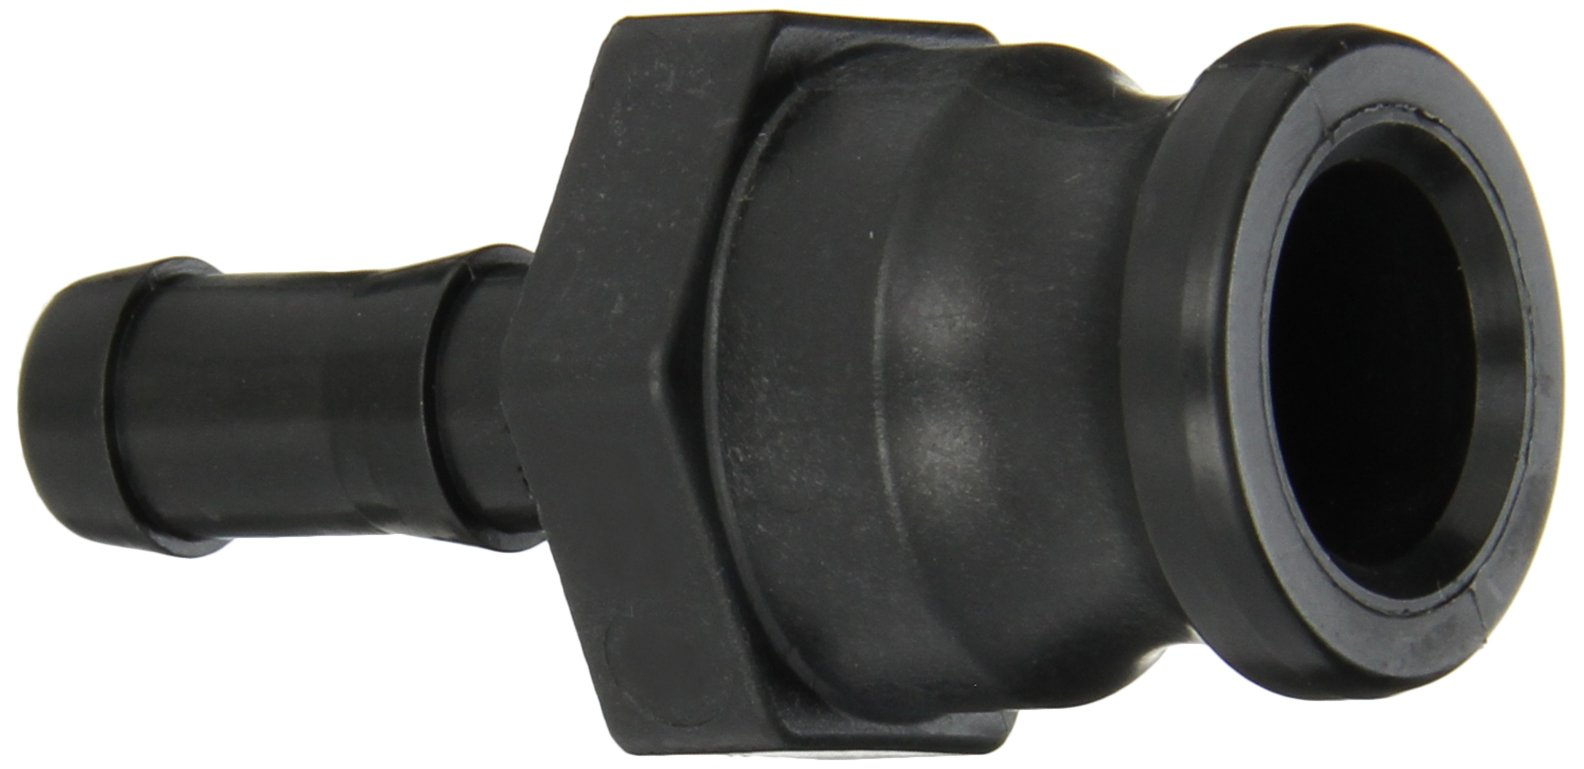 Banjo 75A1//2 Polypropylene Cam /& Groove Fitting 1//2 Male Adapter x NPT Female